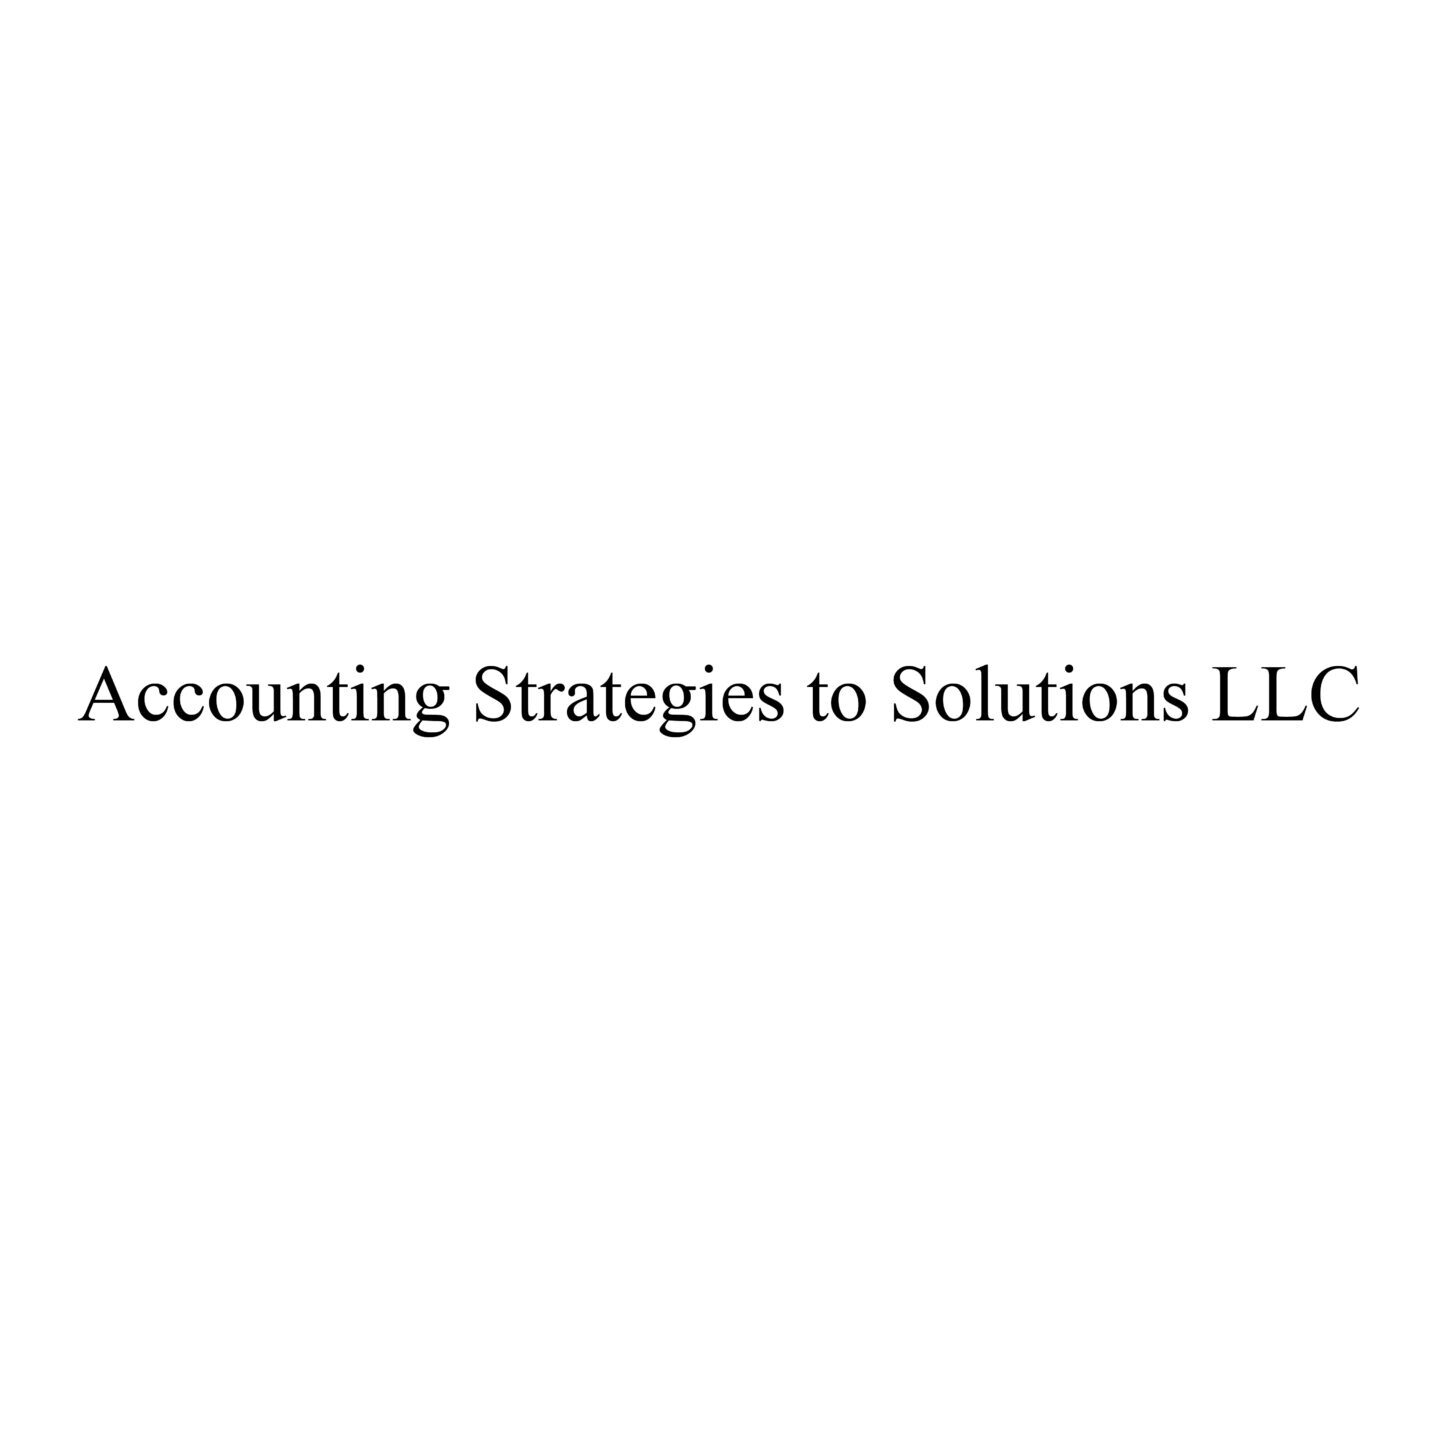 Accounting Strategies to Solutions-01-01